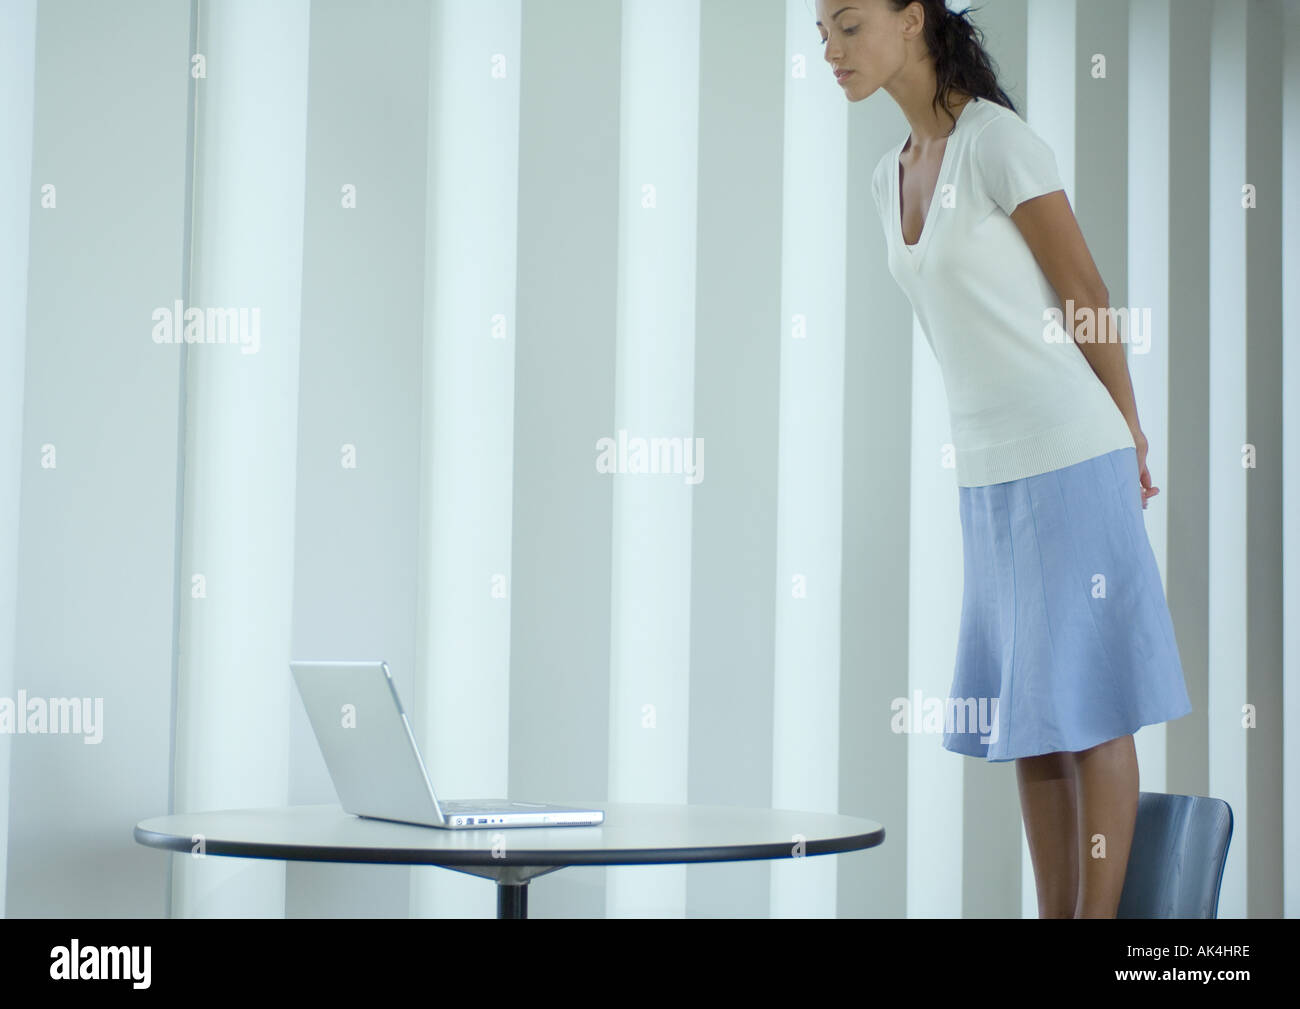 Woman standing on chair, looking down at laptop - Stock Image